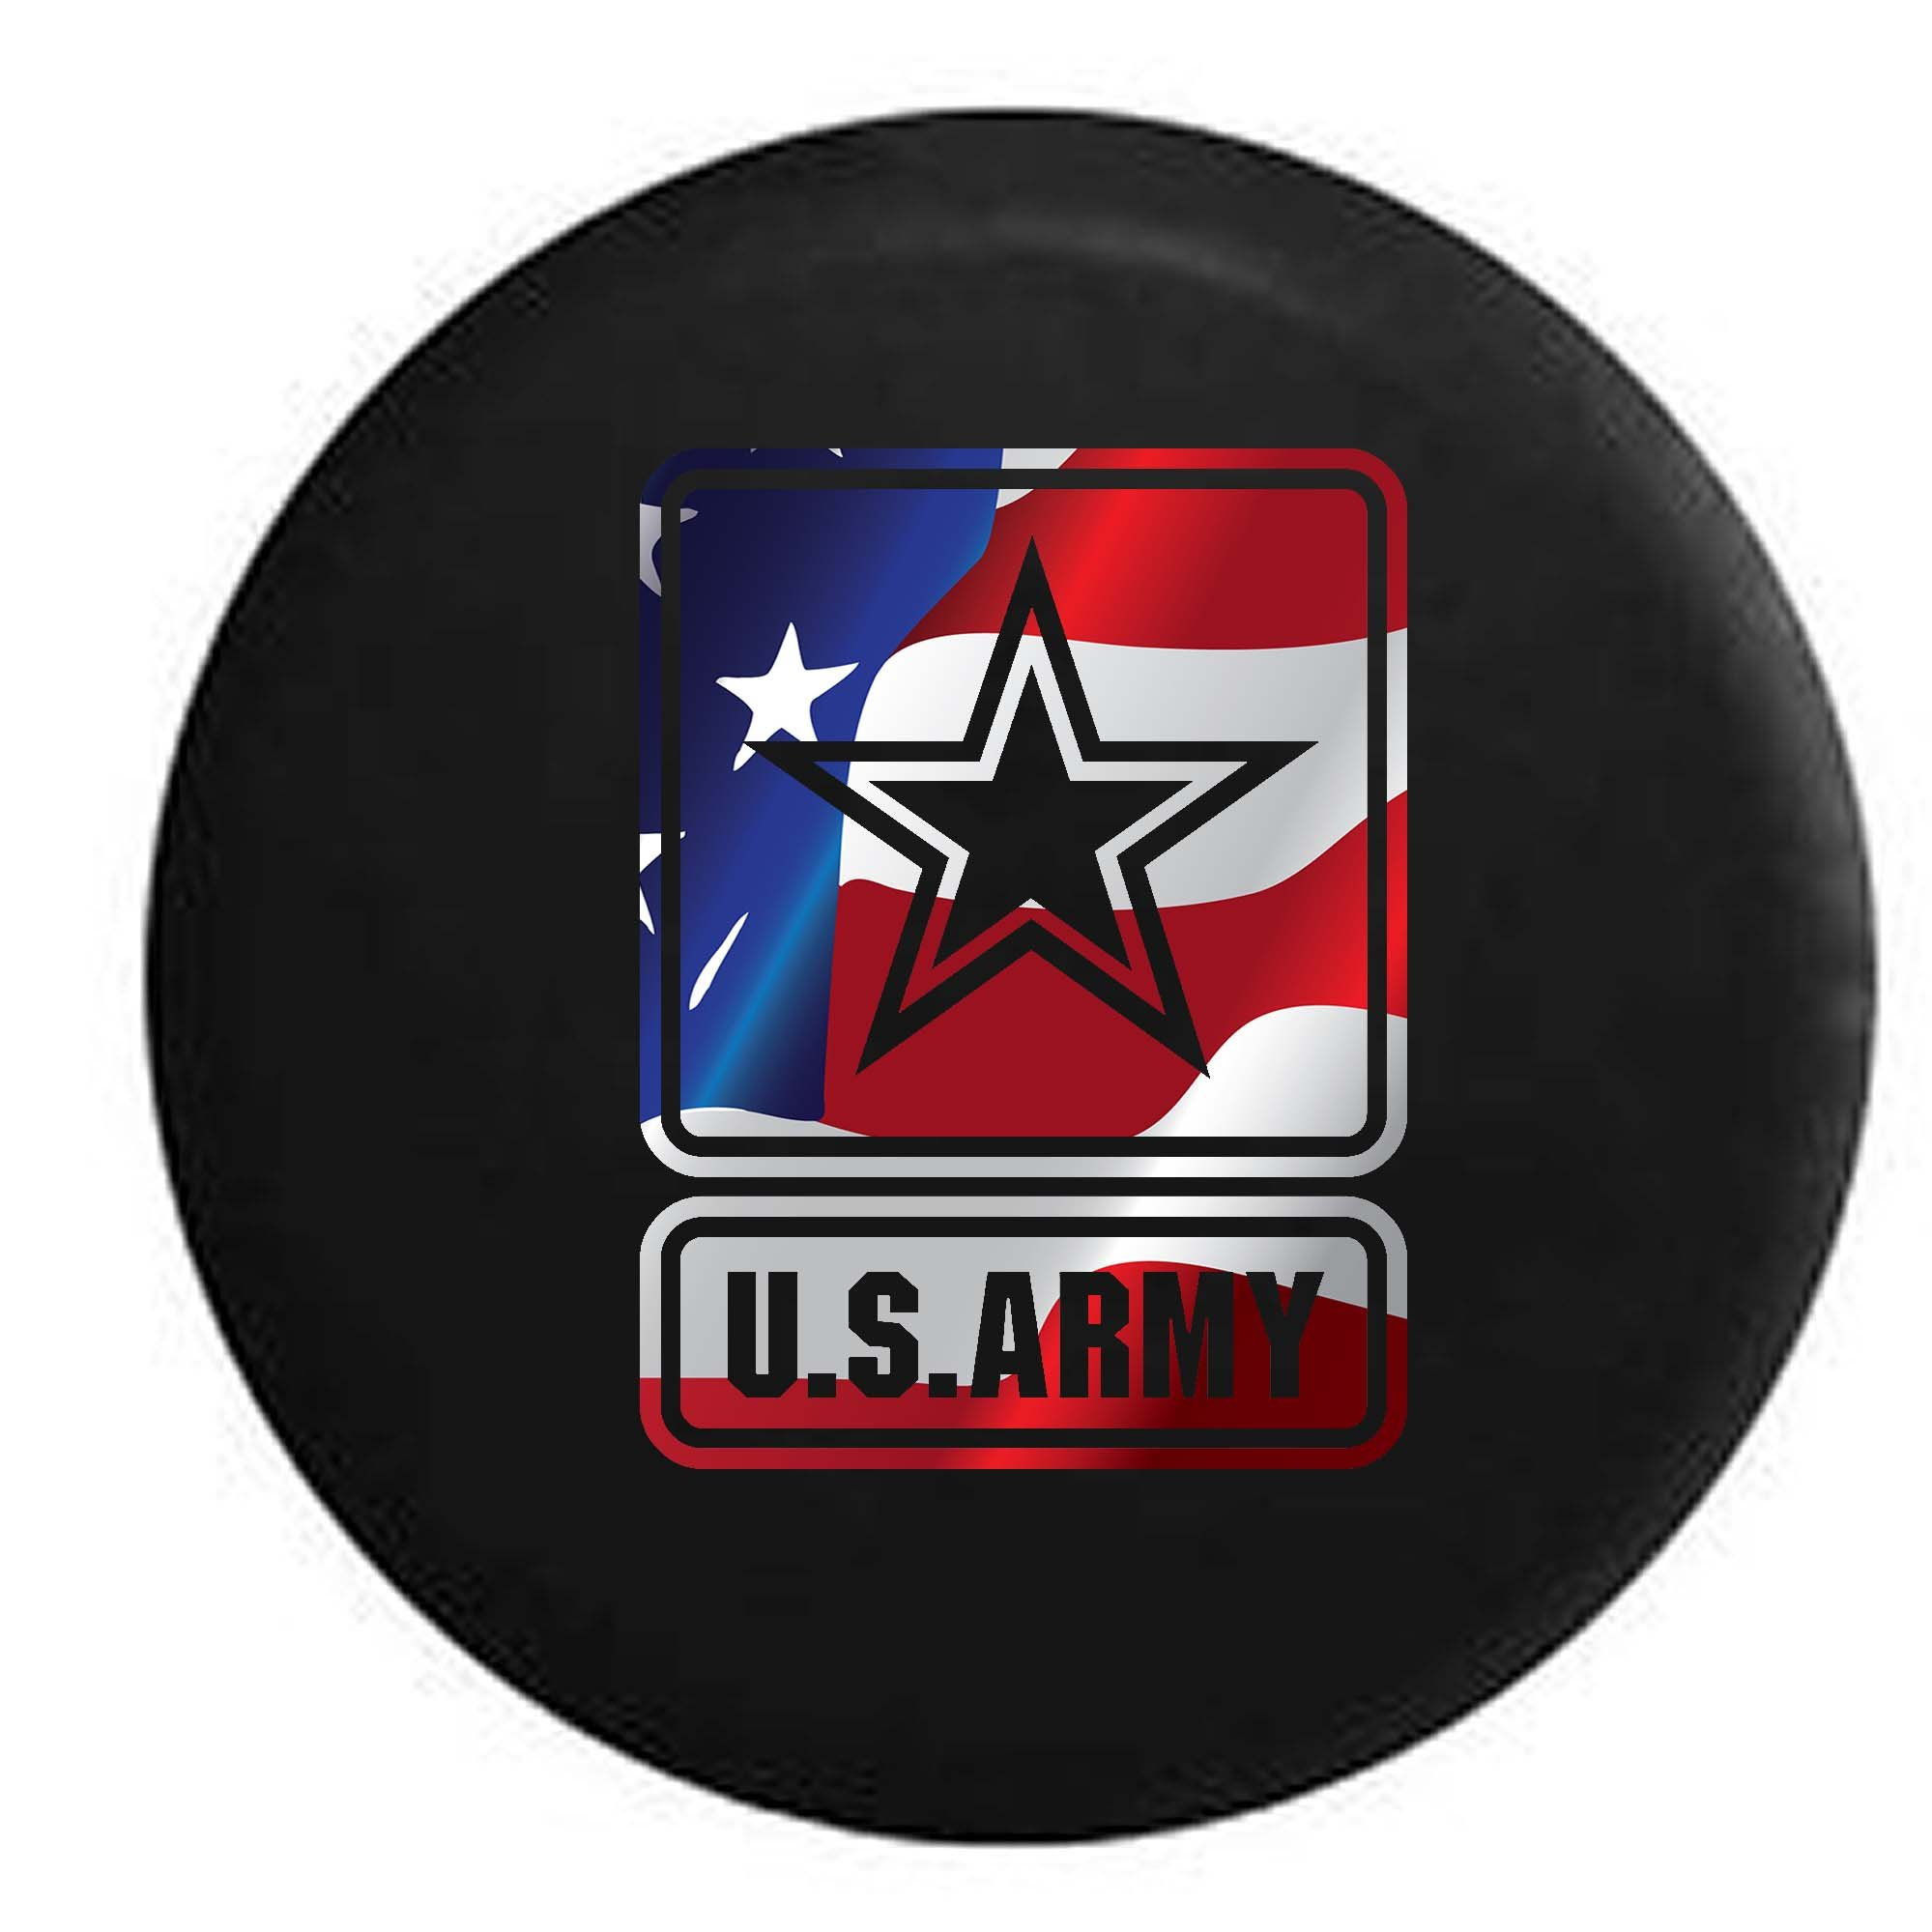 Pike Flag - US Army Star Military Trailer RV Spare Tire Cover OEM Vinyl Black 29 in